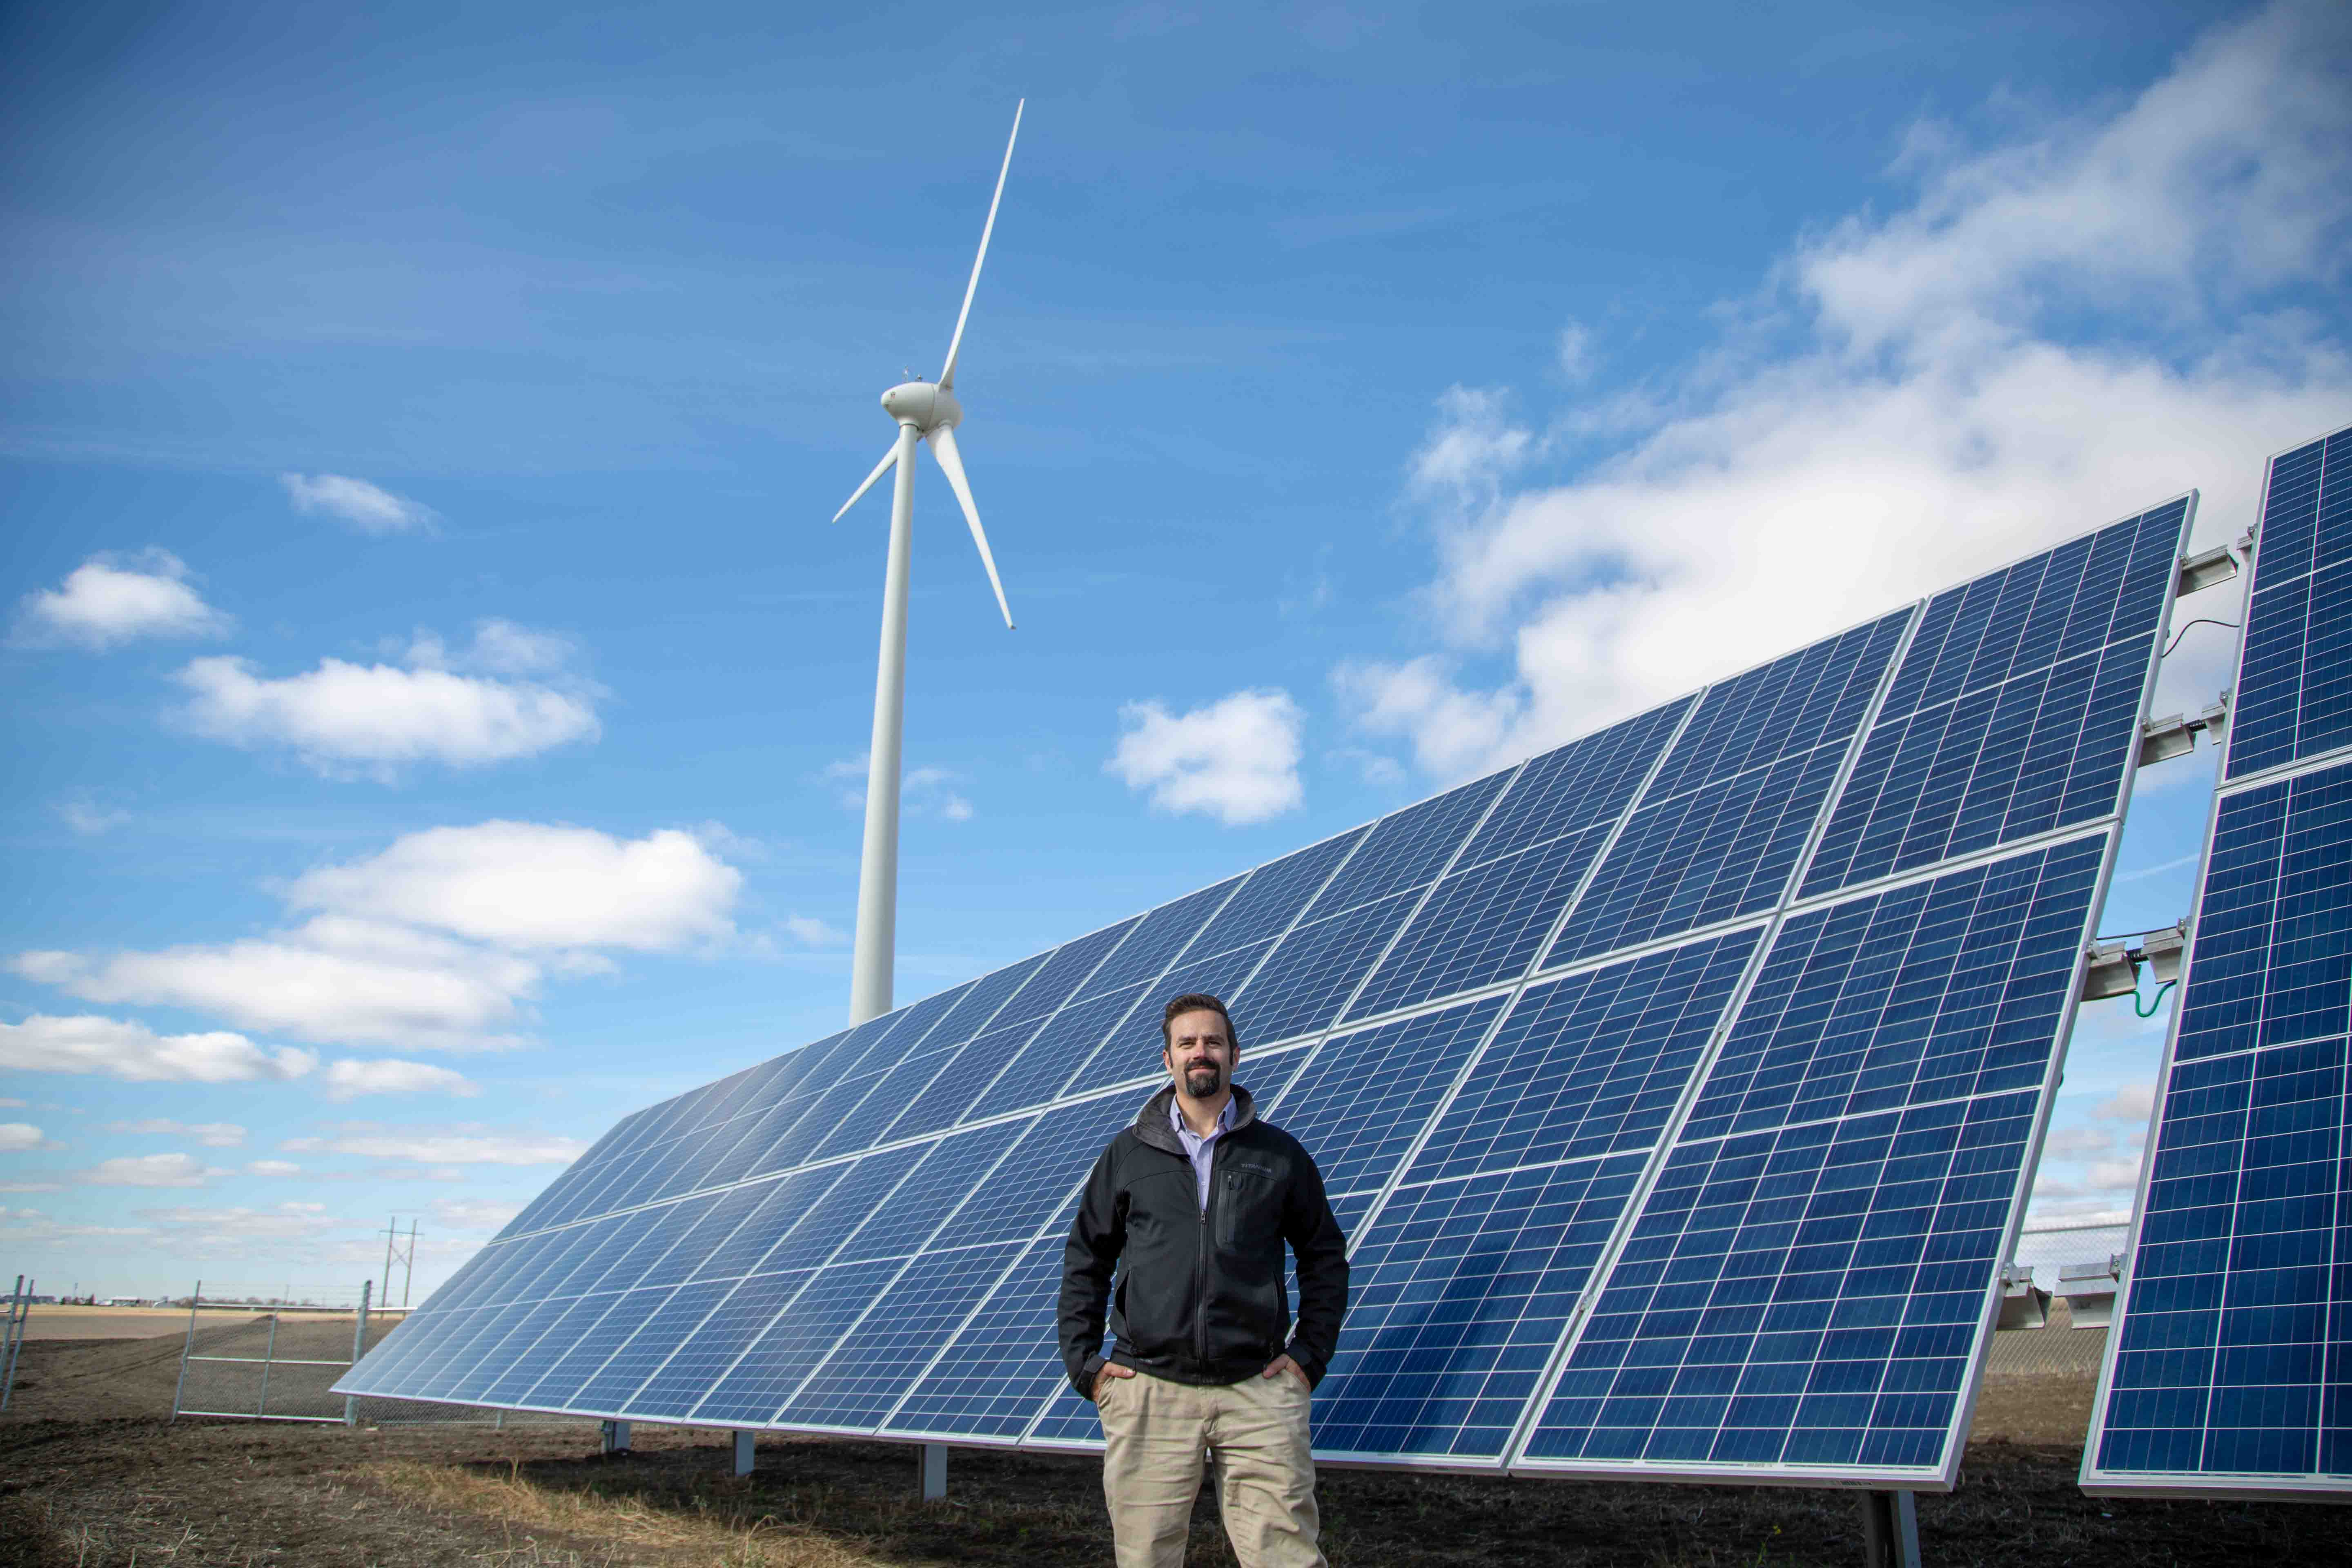 src employee standing in front of wind turbine and solar panels